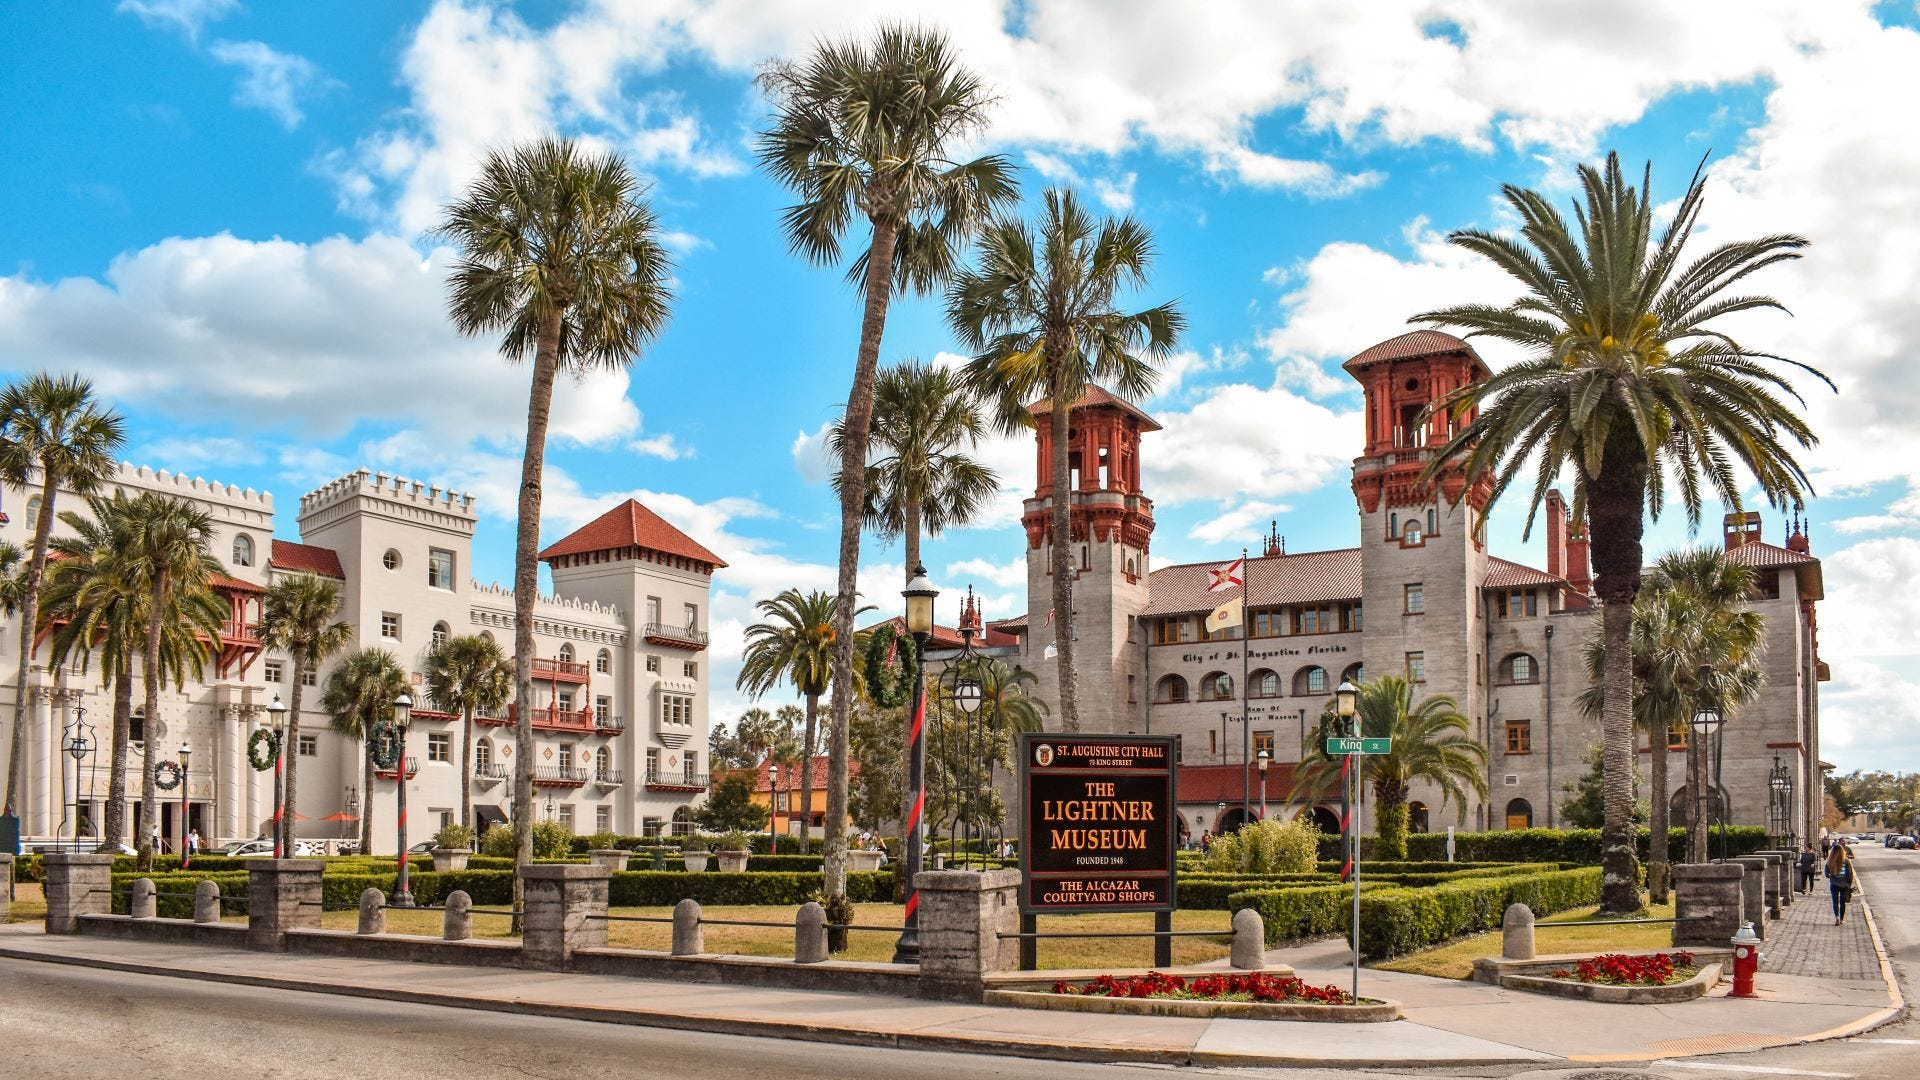 The Casa Monica Hotel and Lightner Museum in St. Augustine.